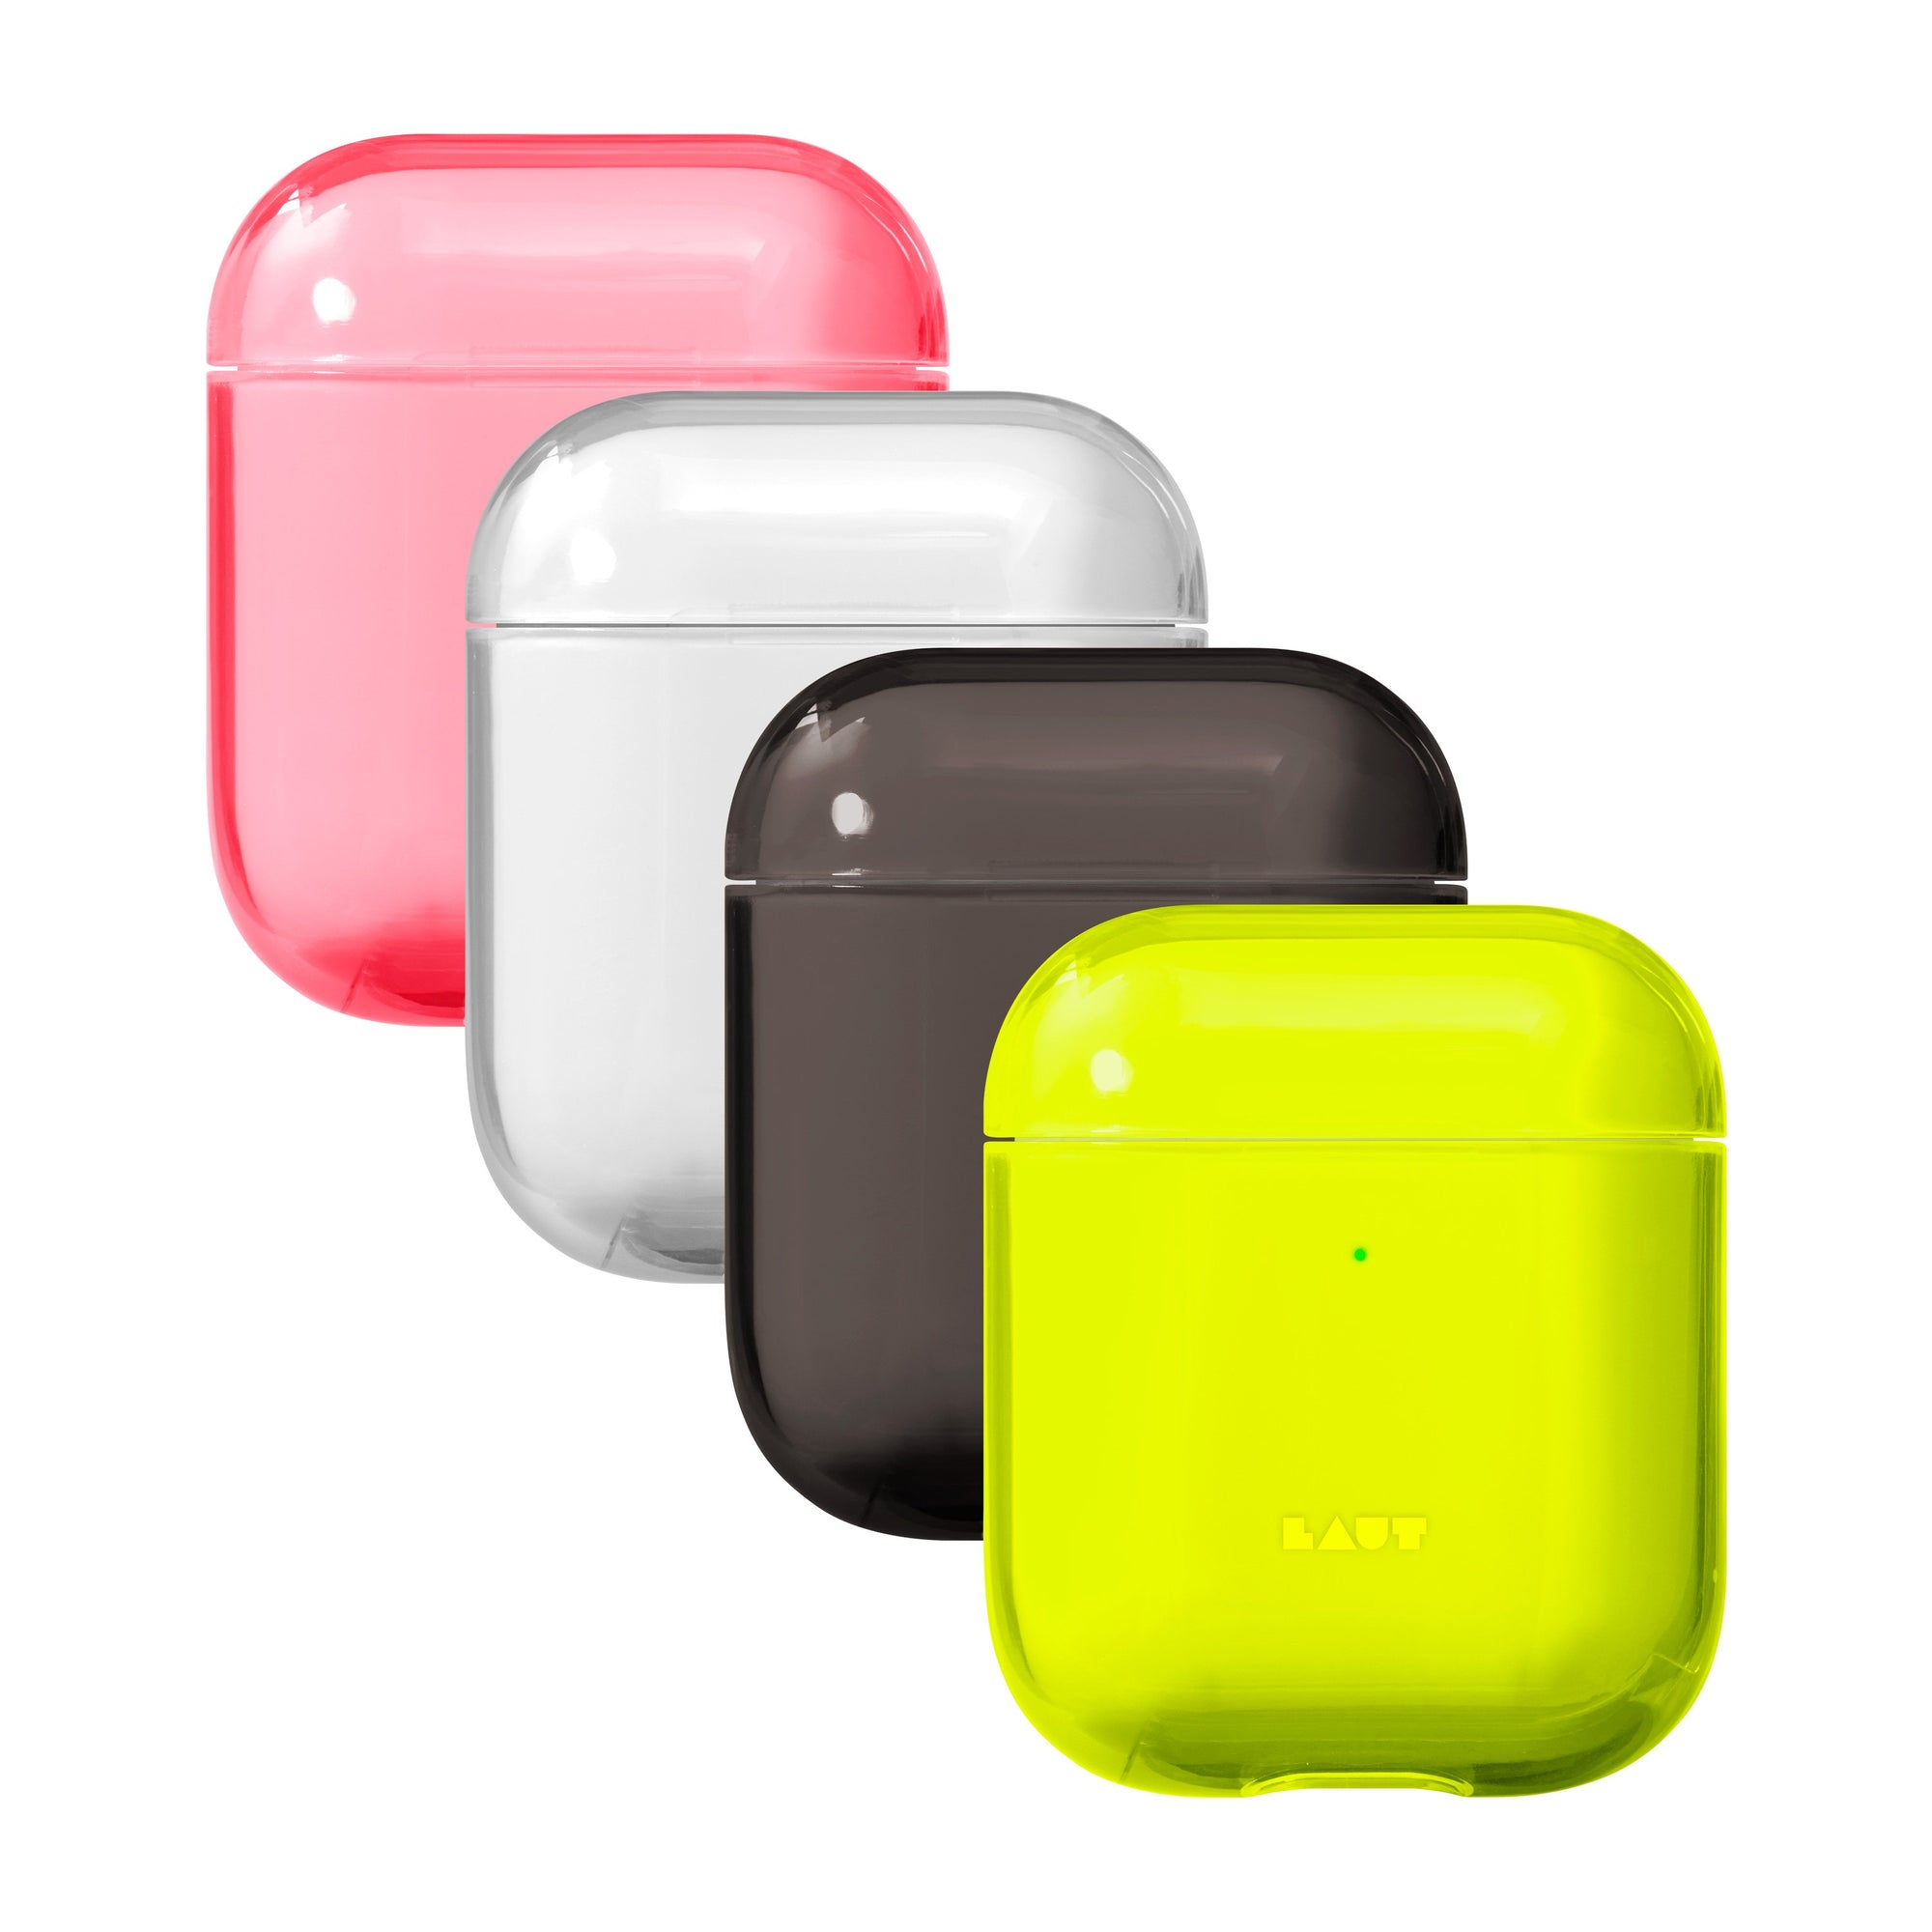 CRYSTAL-X for AirPods - LAUT Japan